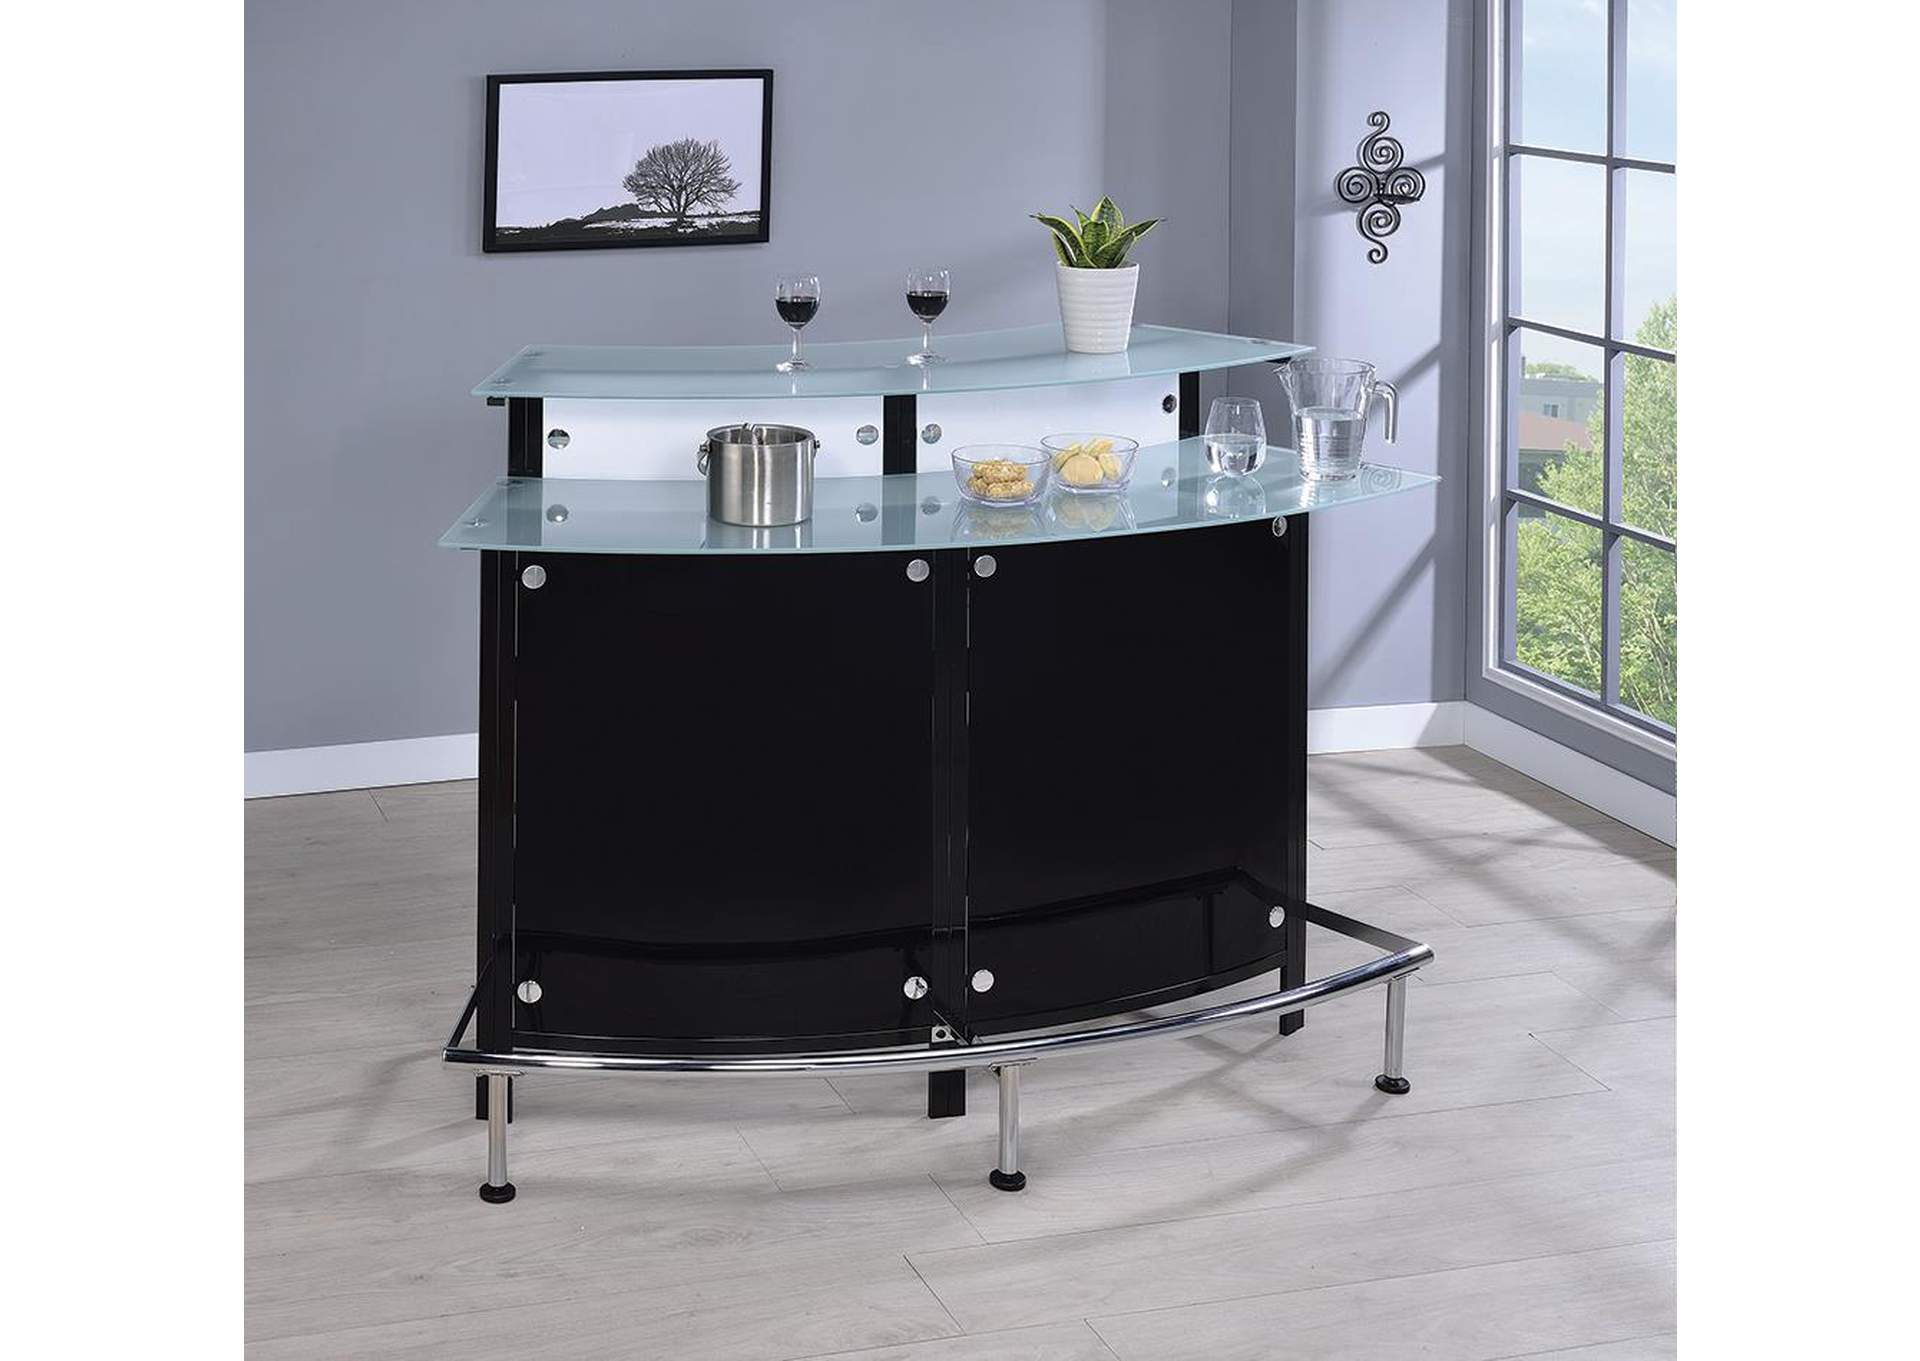 Cinder Two-Shelf Contemporary Chrome and Black Bar Unit,Coaster Furniture